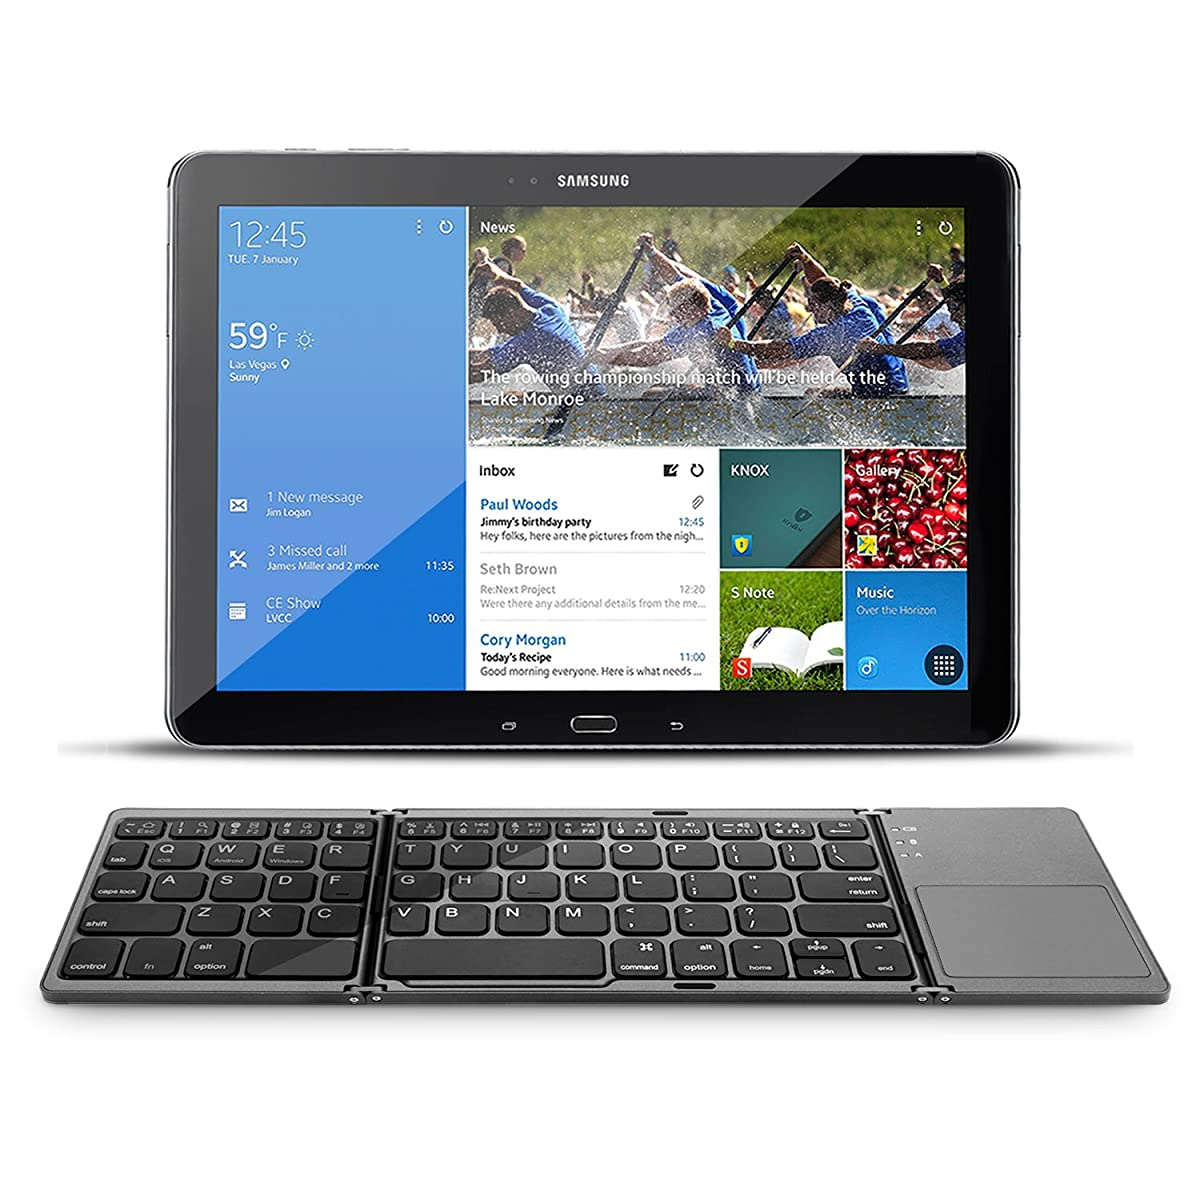 Folding Bluetooth Keyboard, Jelly Comb Rechargeable Portable BT Wireless Foldable Mini Keyboard with Touchpad for Tablet Samsung or Other Cell Phones (Dark Gray)